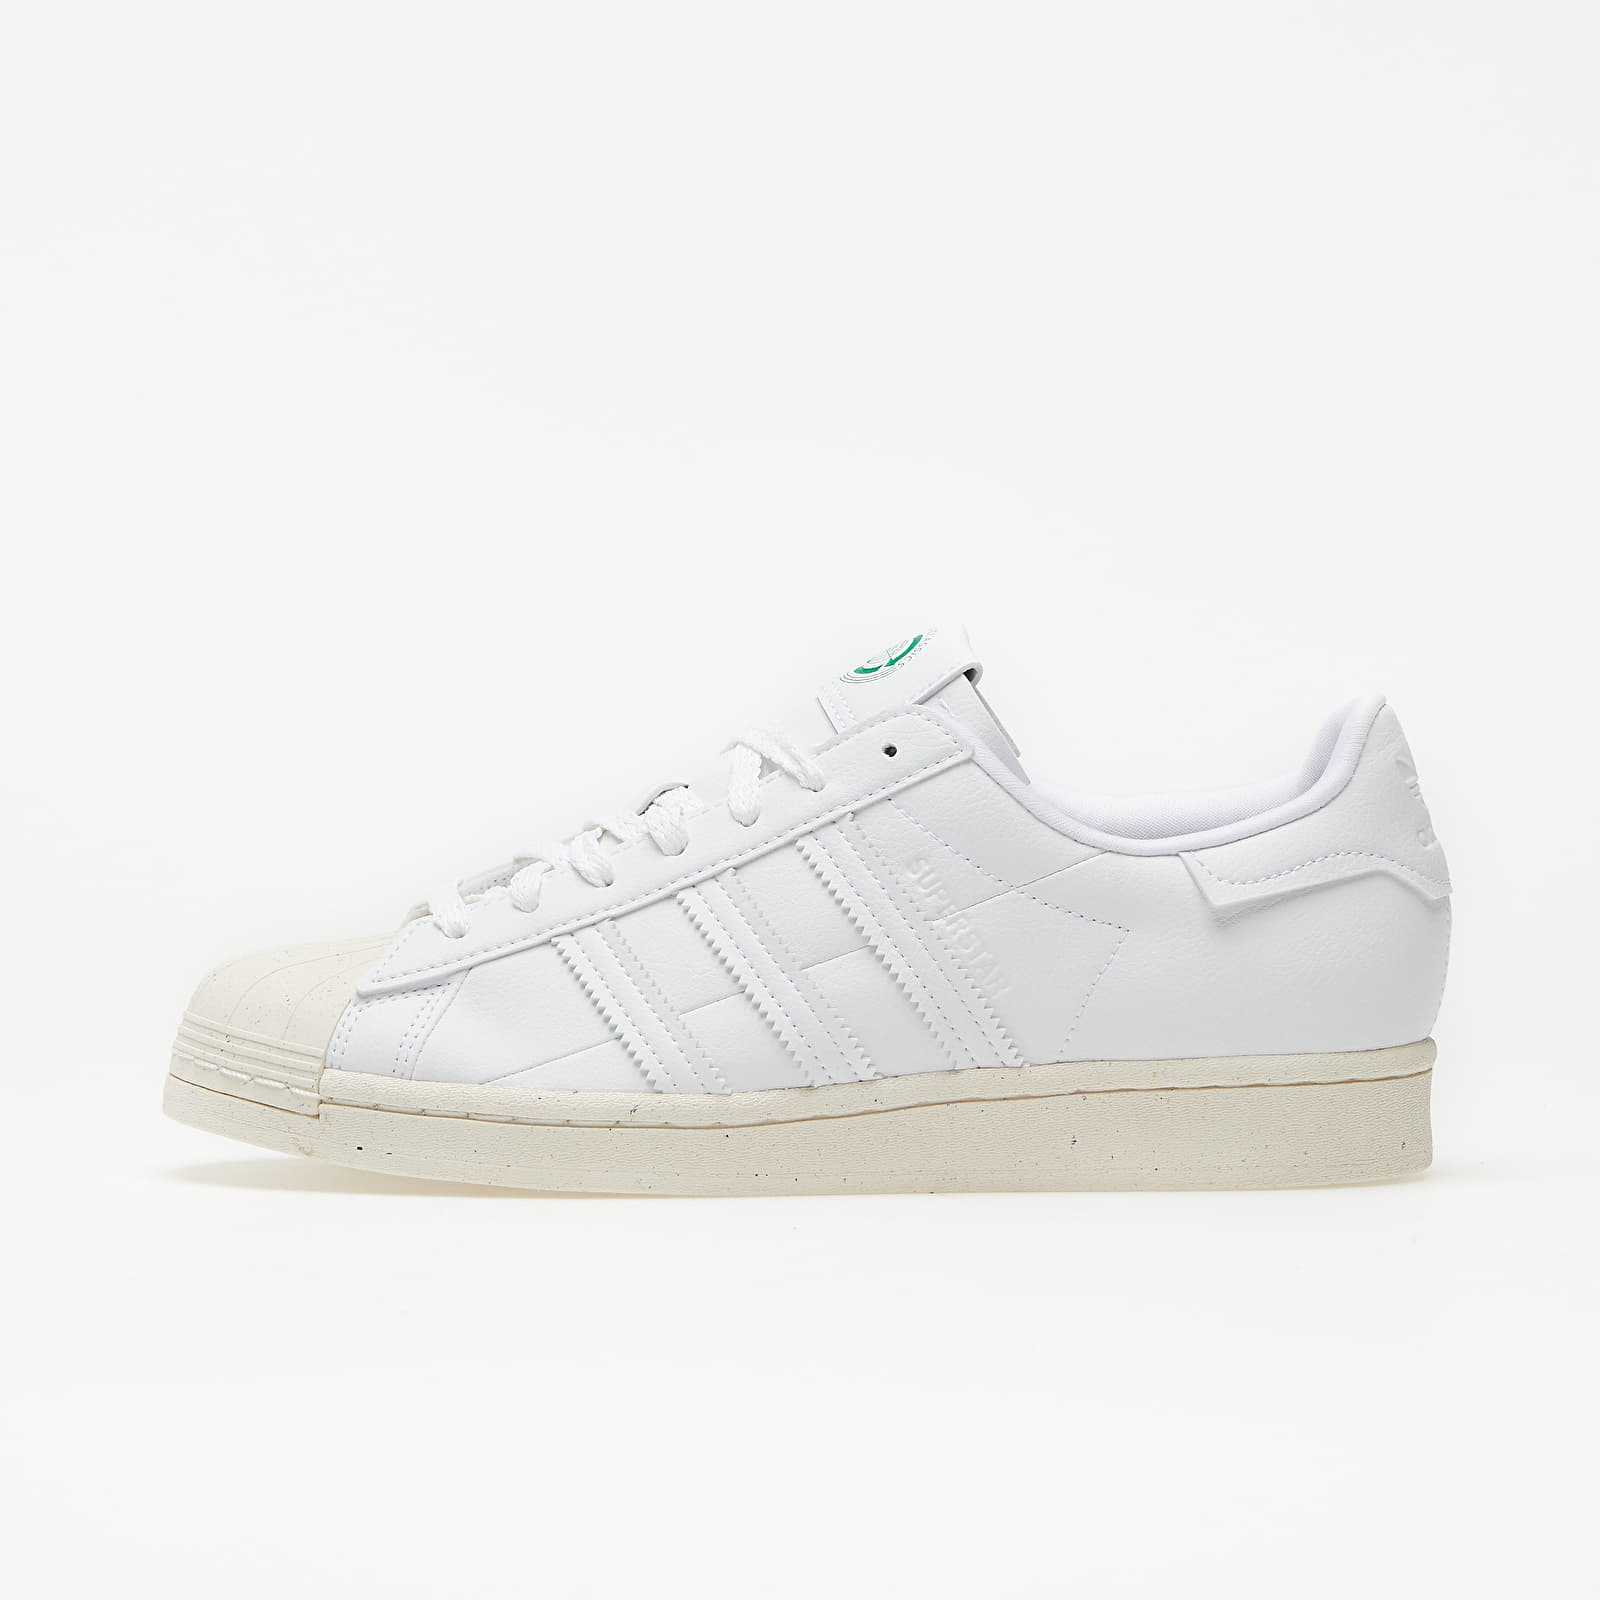 adidas Superstar Clean Classics Ftw White/ Off White/ Green EUR 44